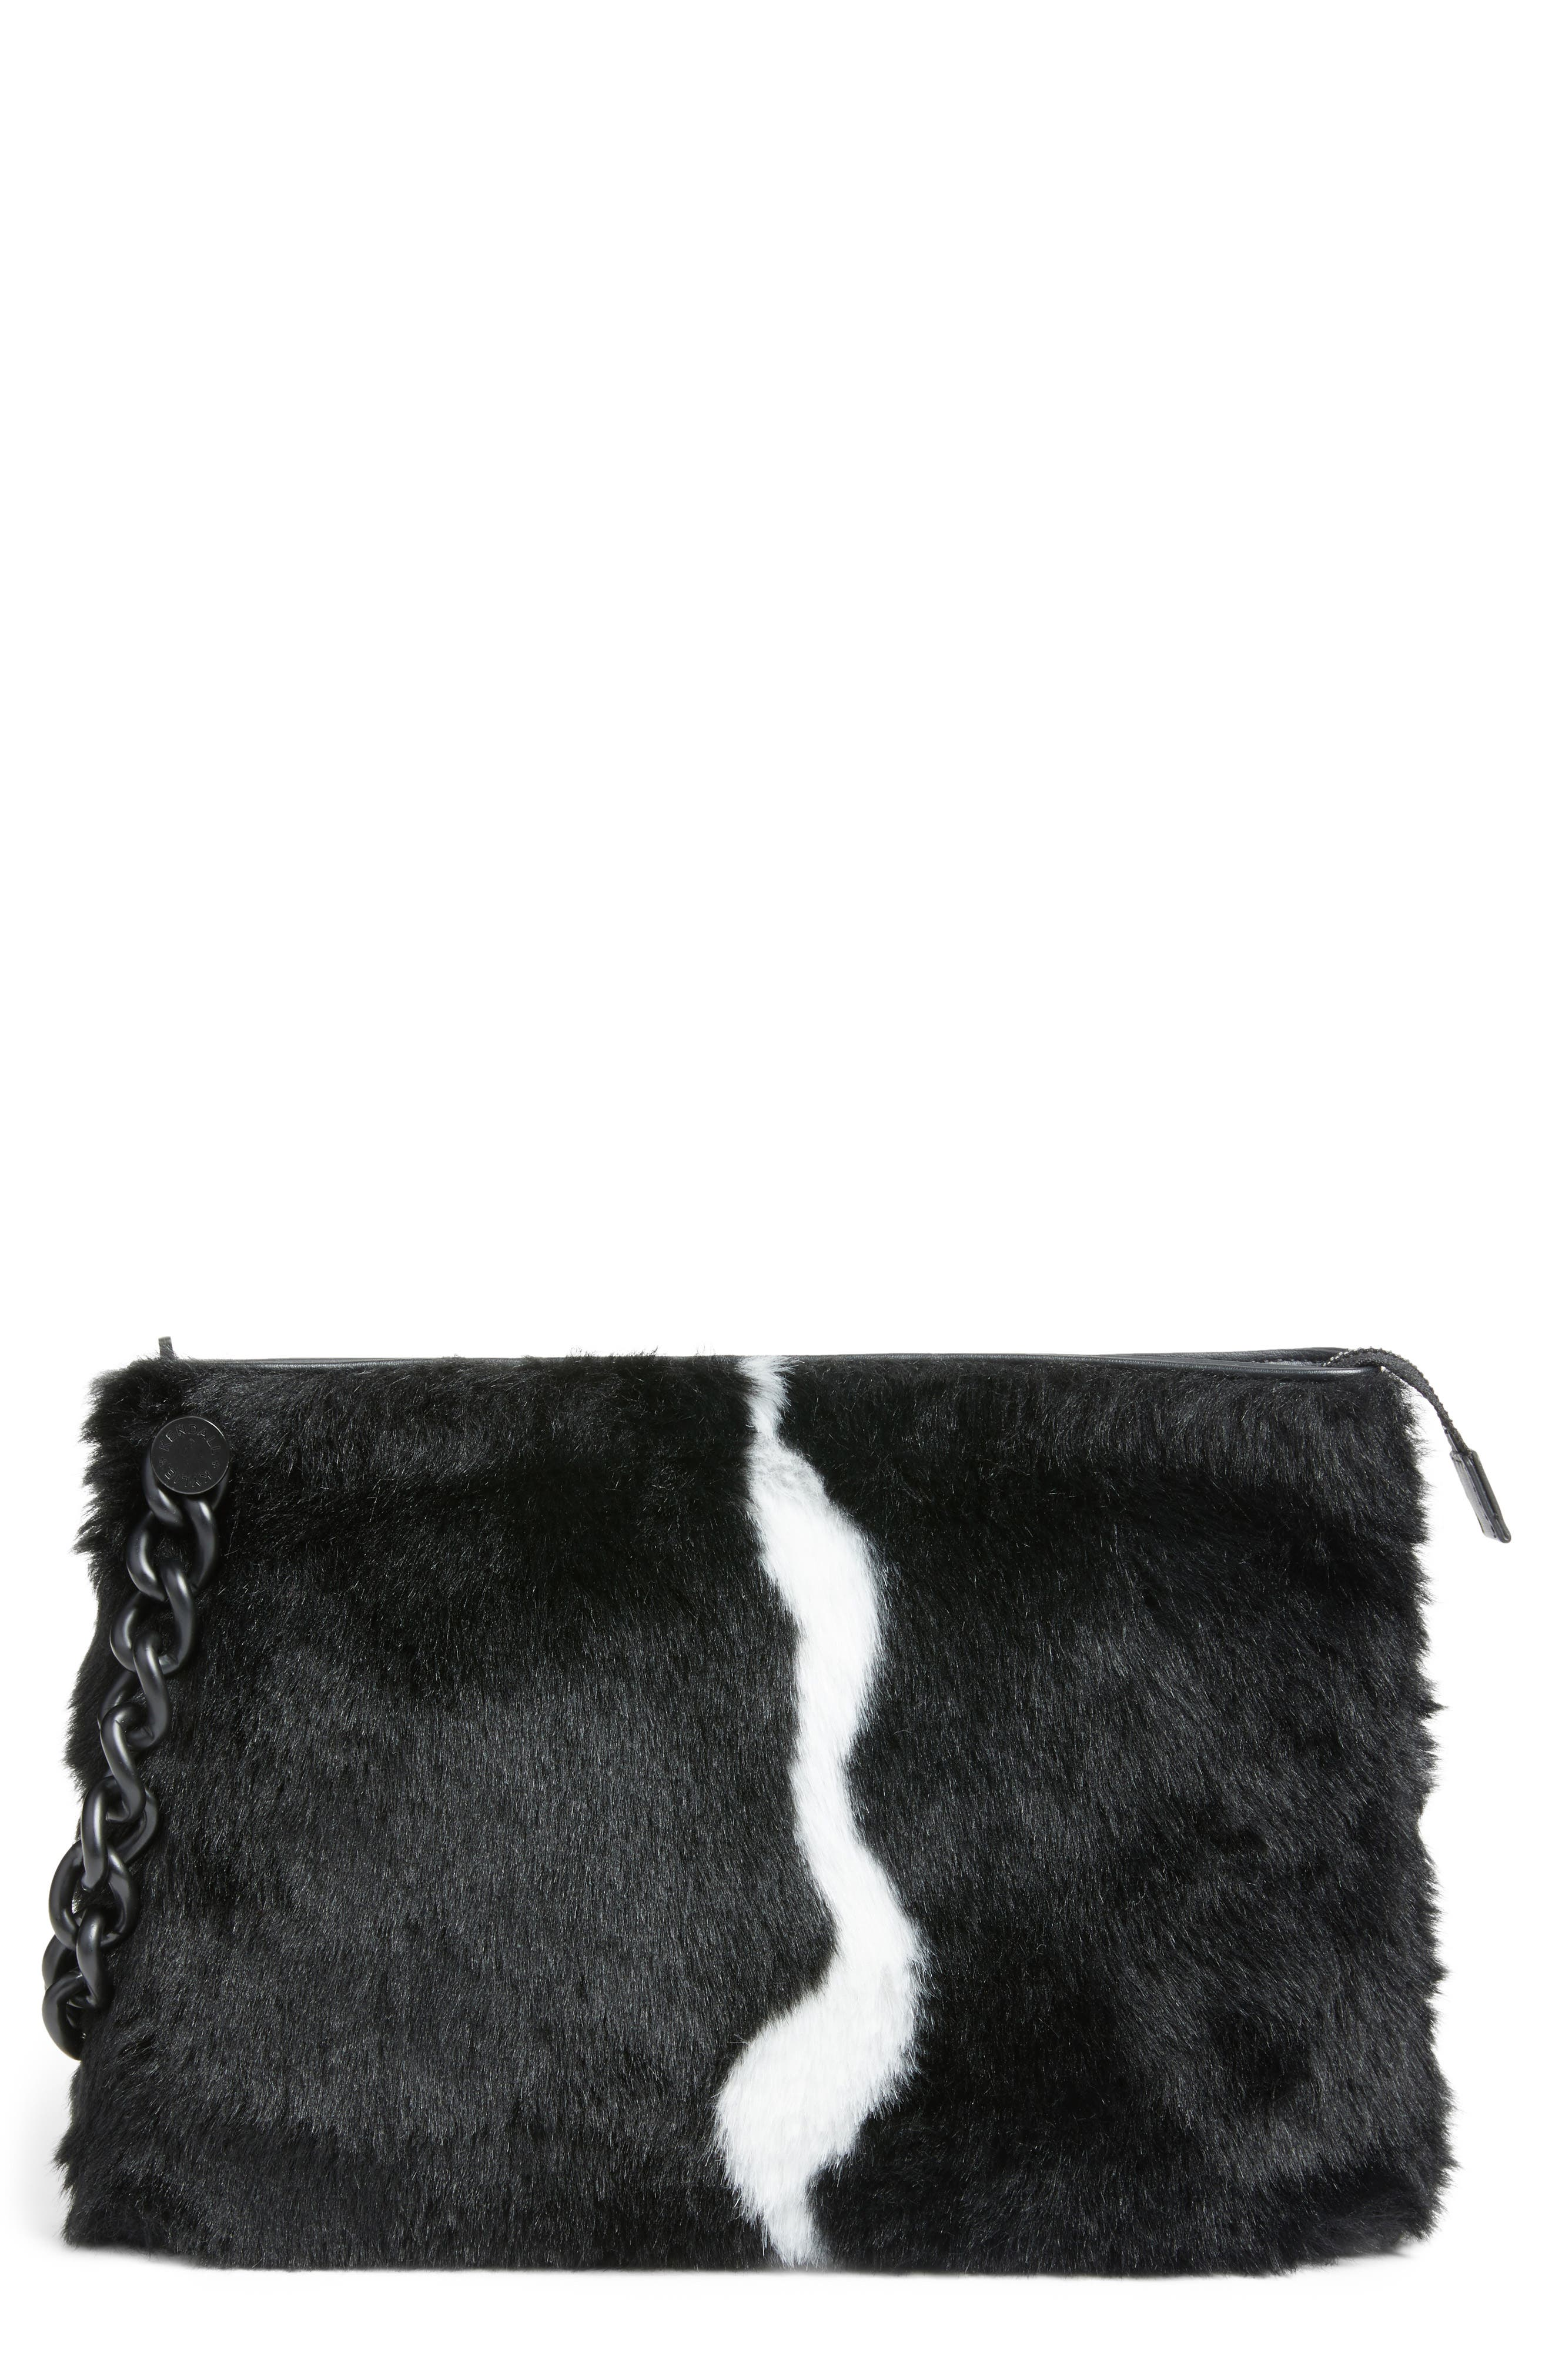 Alternate Image 1 Selected - KENDALL + KYLIE Corey Faux Fur Clutch